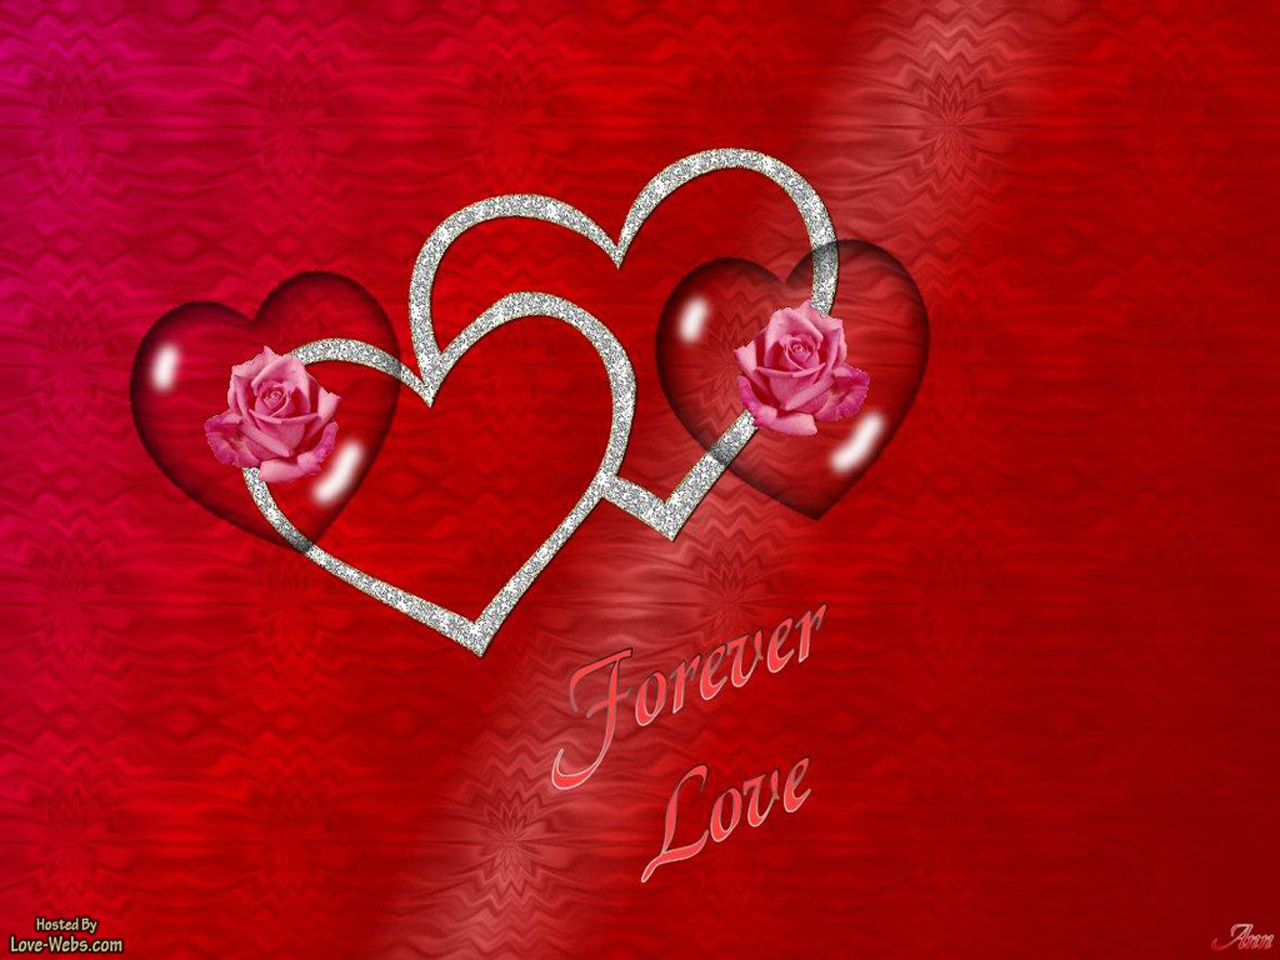 Wallpaper Love Name A : All In One computer, Mobiles, Software, Keys, Islamic Wallpapers, Others Wallpapers, Videos ...